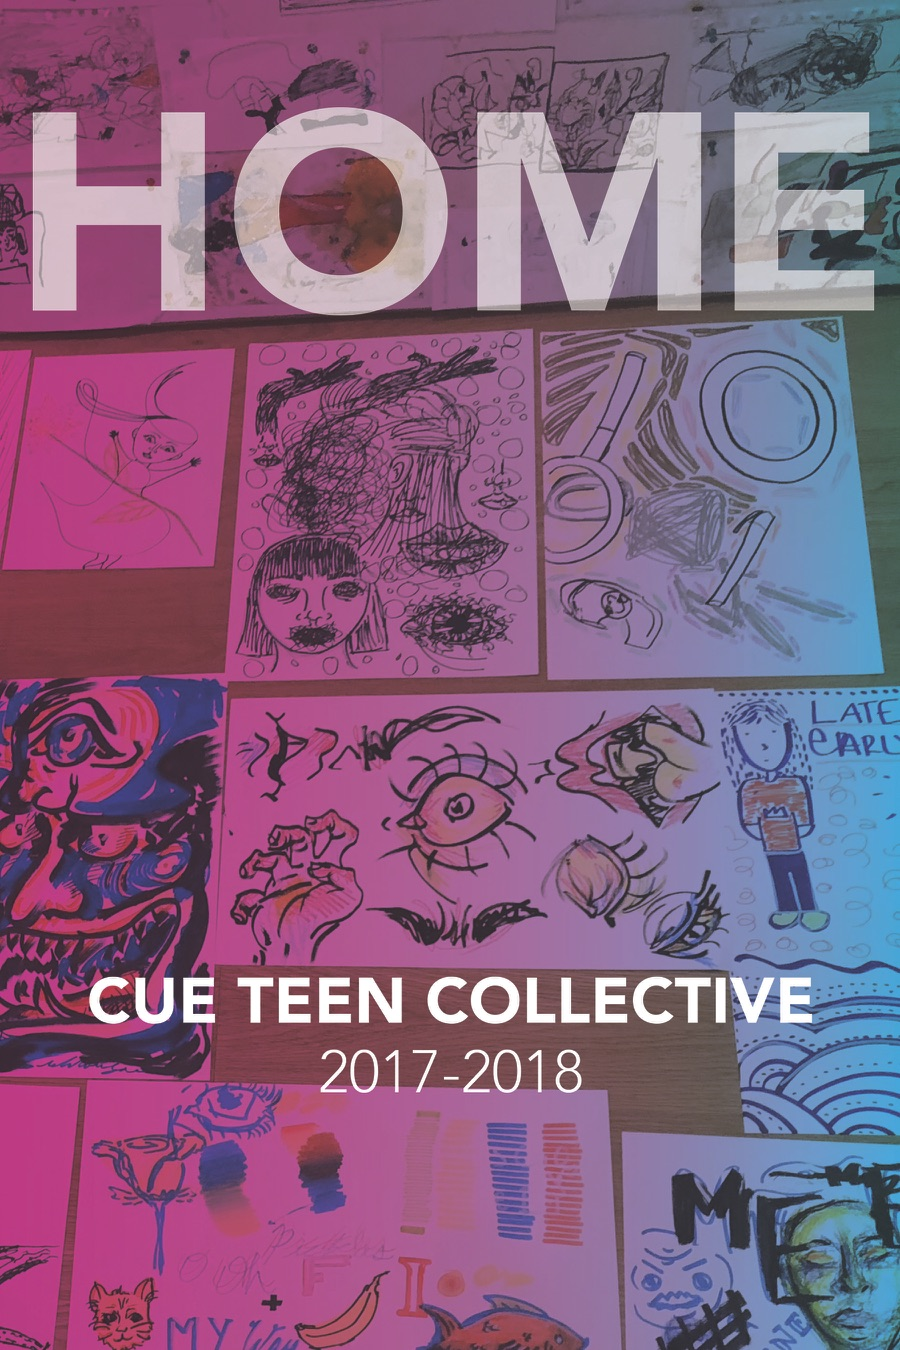 View the 2017-18 yearbook/exhibition catalogue here.